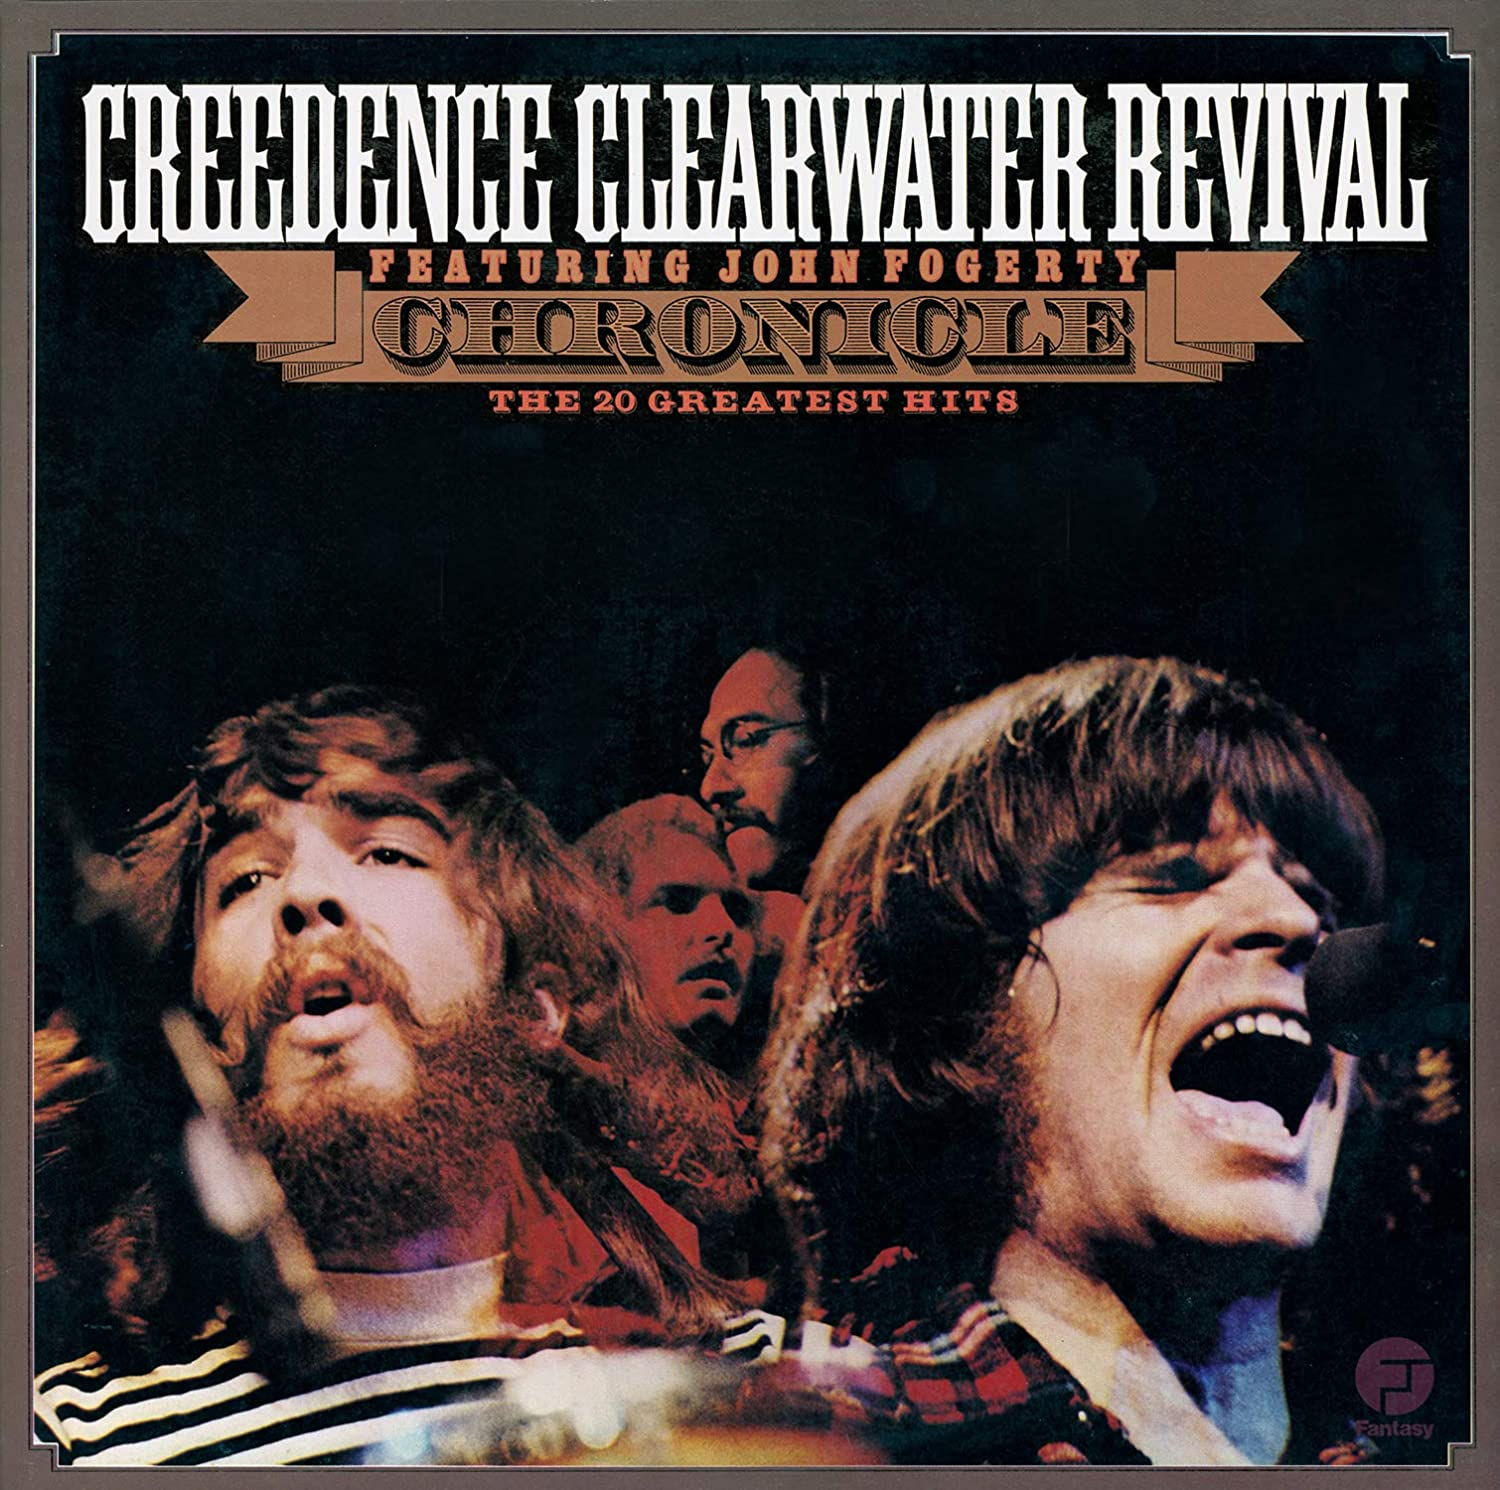 Chronicle 20 Greatest Hits   Creedence Clearwater Revival Amazon ...